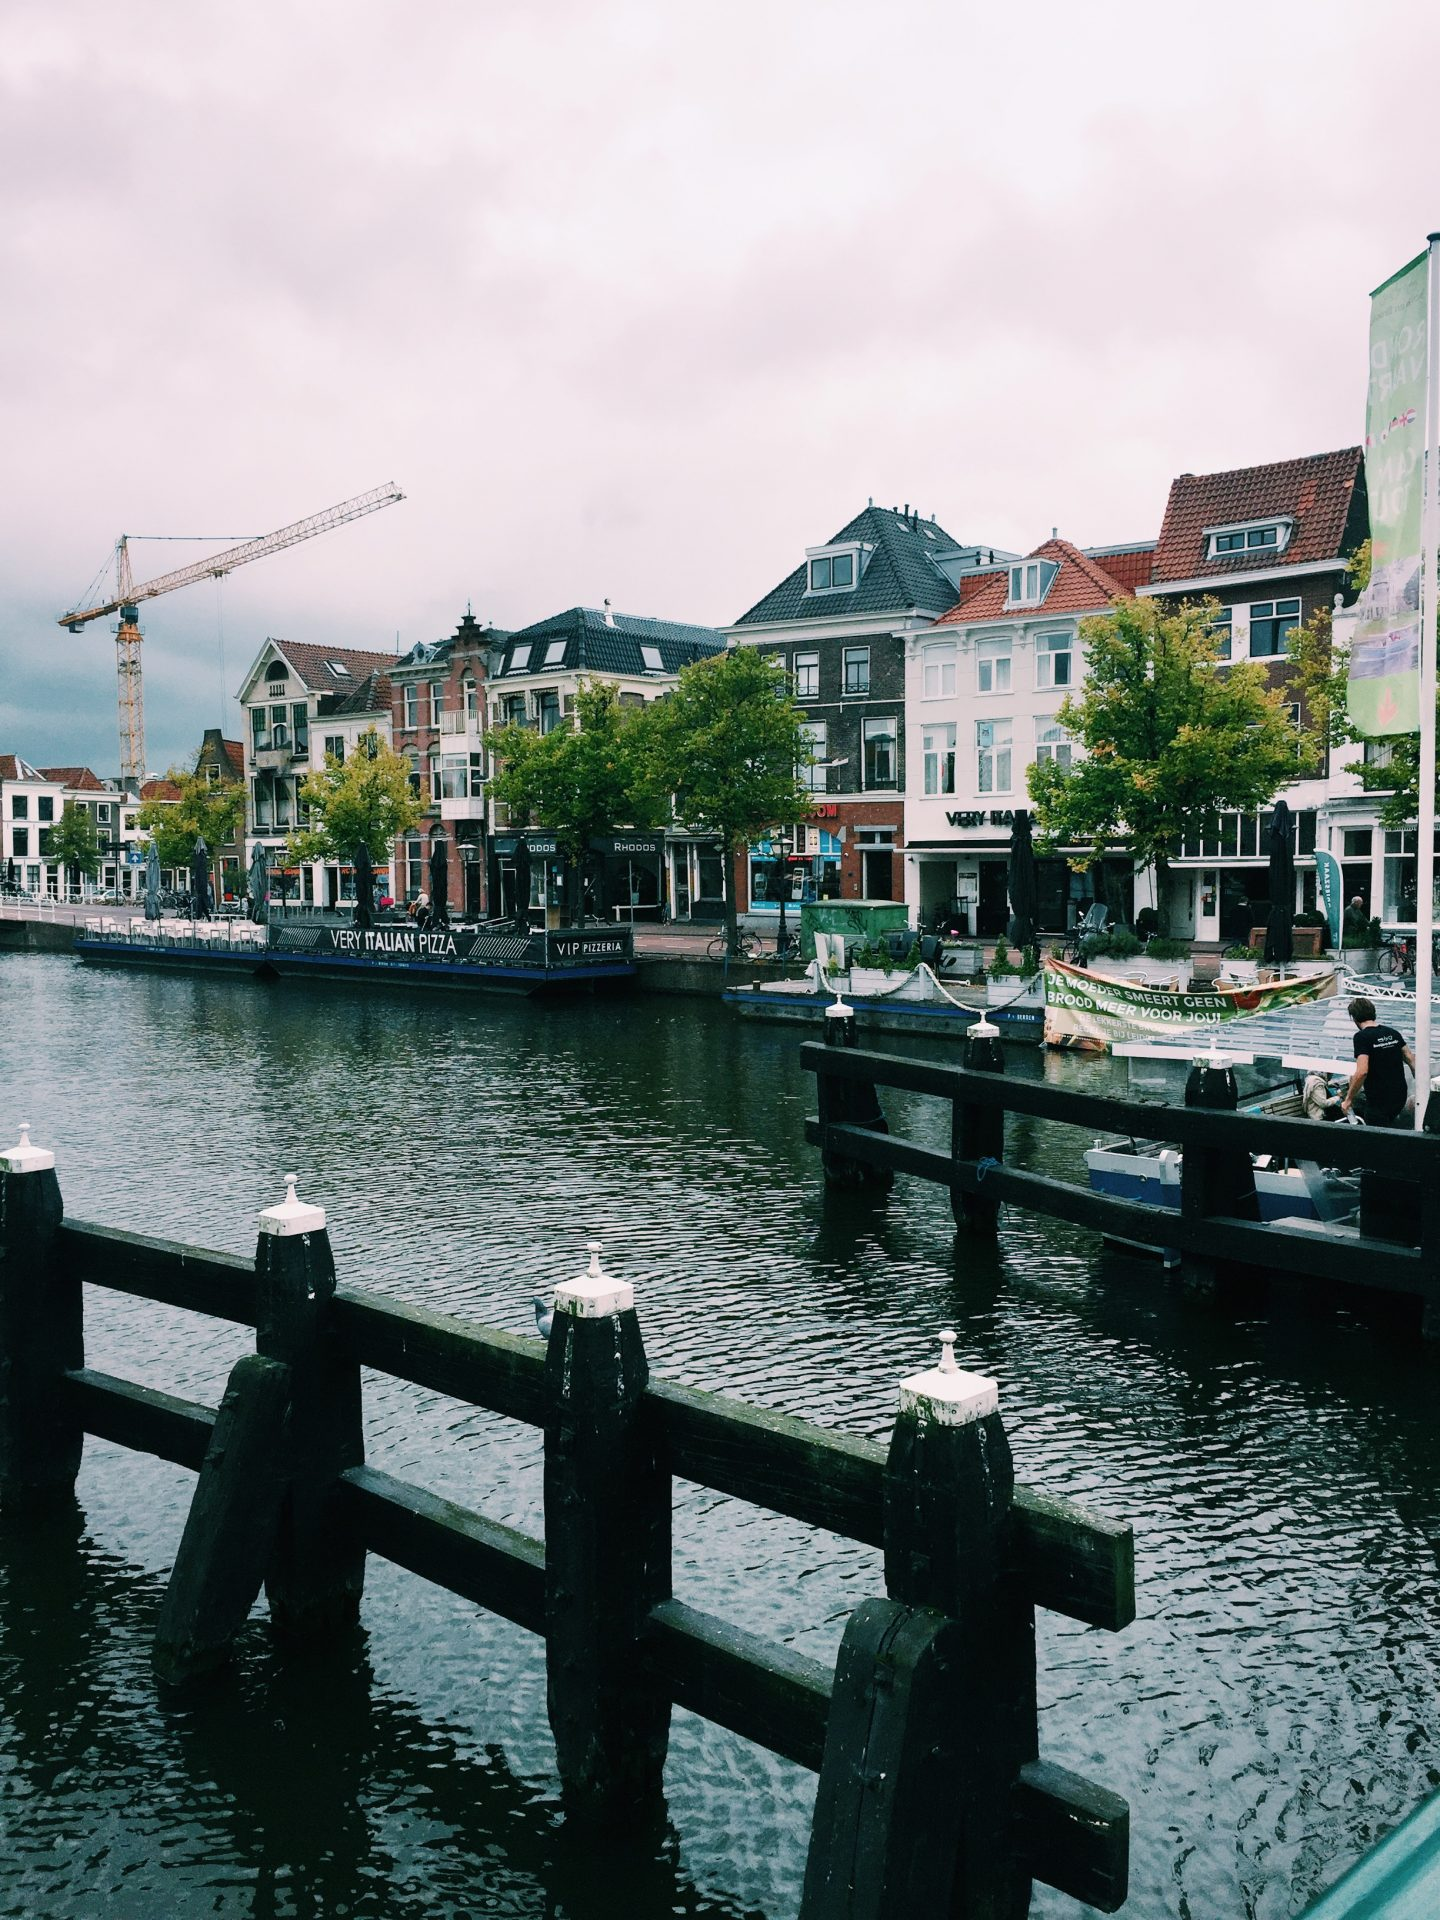 This is Leiden